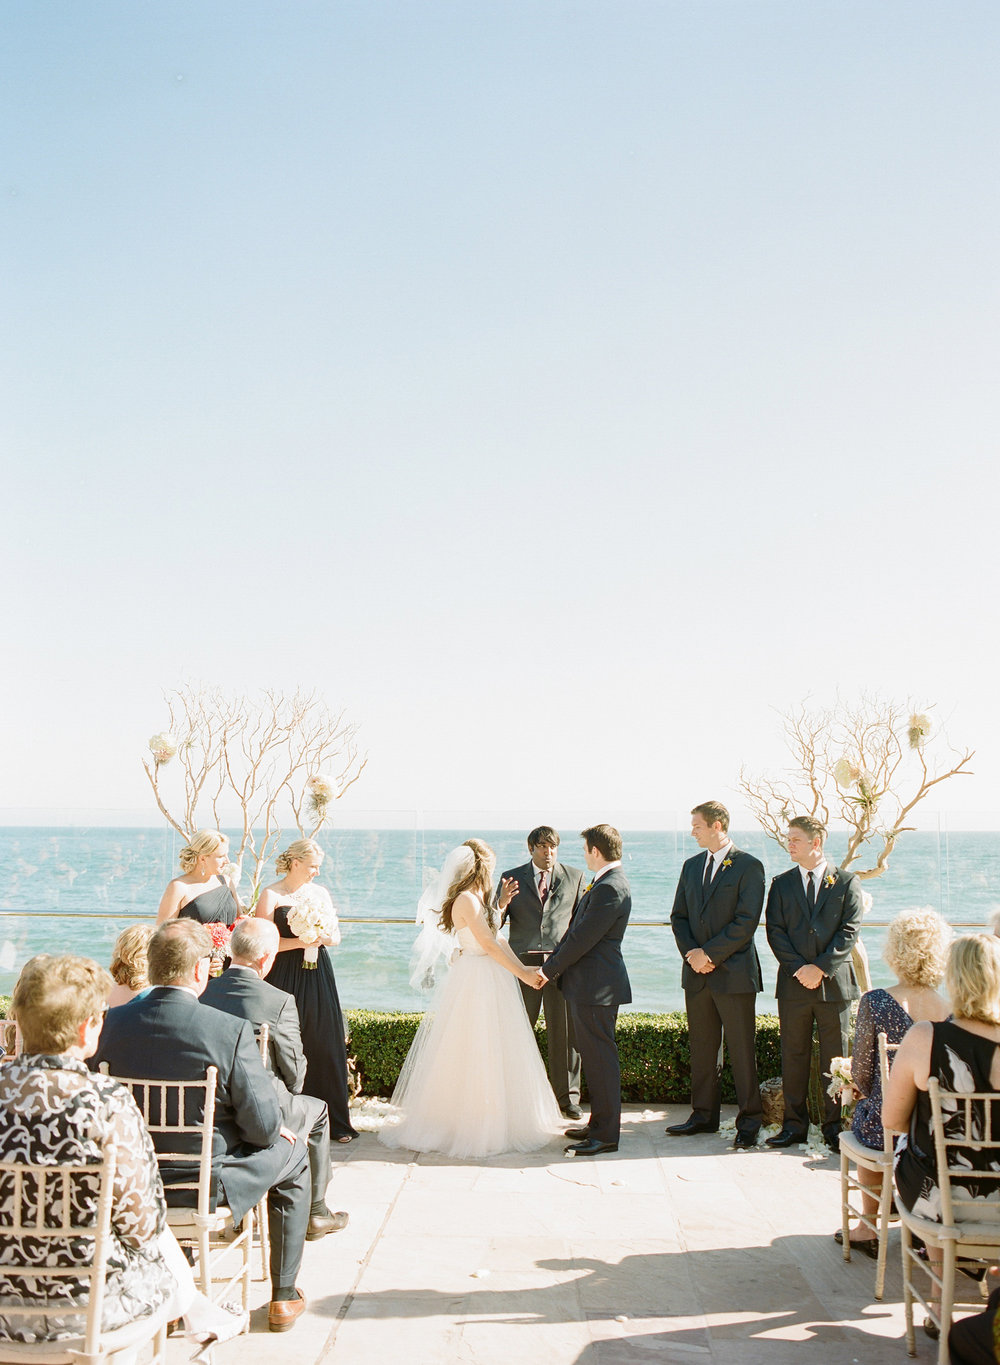 santabarbarawedding.com | Photographer: Beaux Arts Photographie | Santa Barbara Four Seasons Biltmore | Wedding Venue